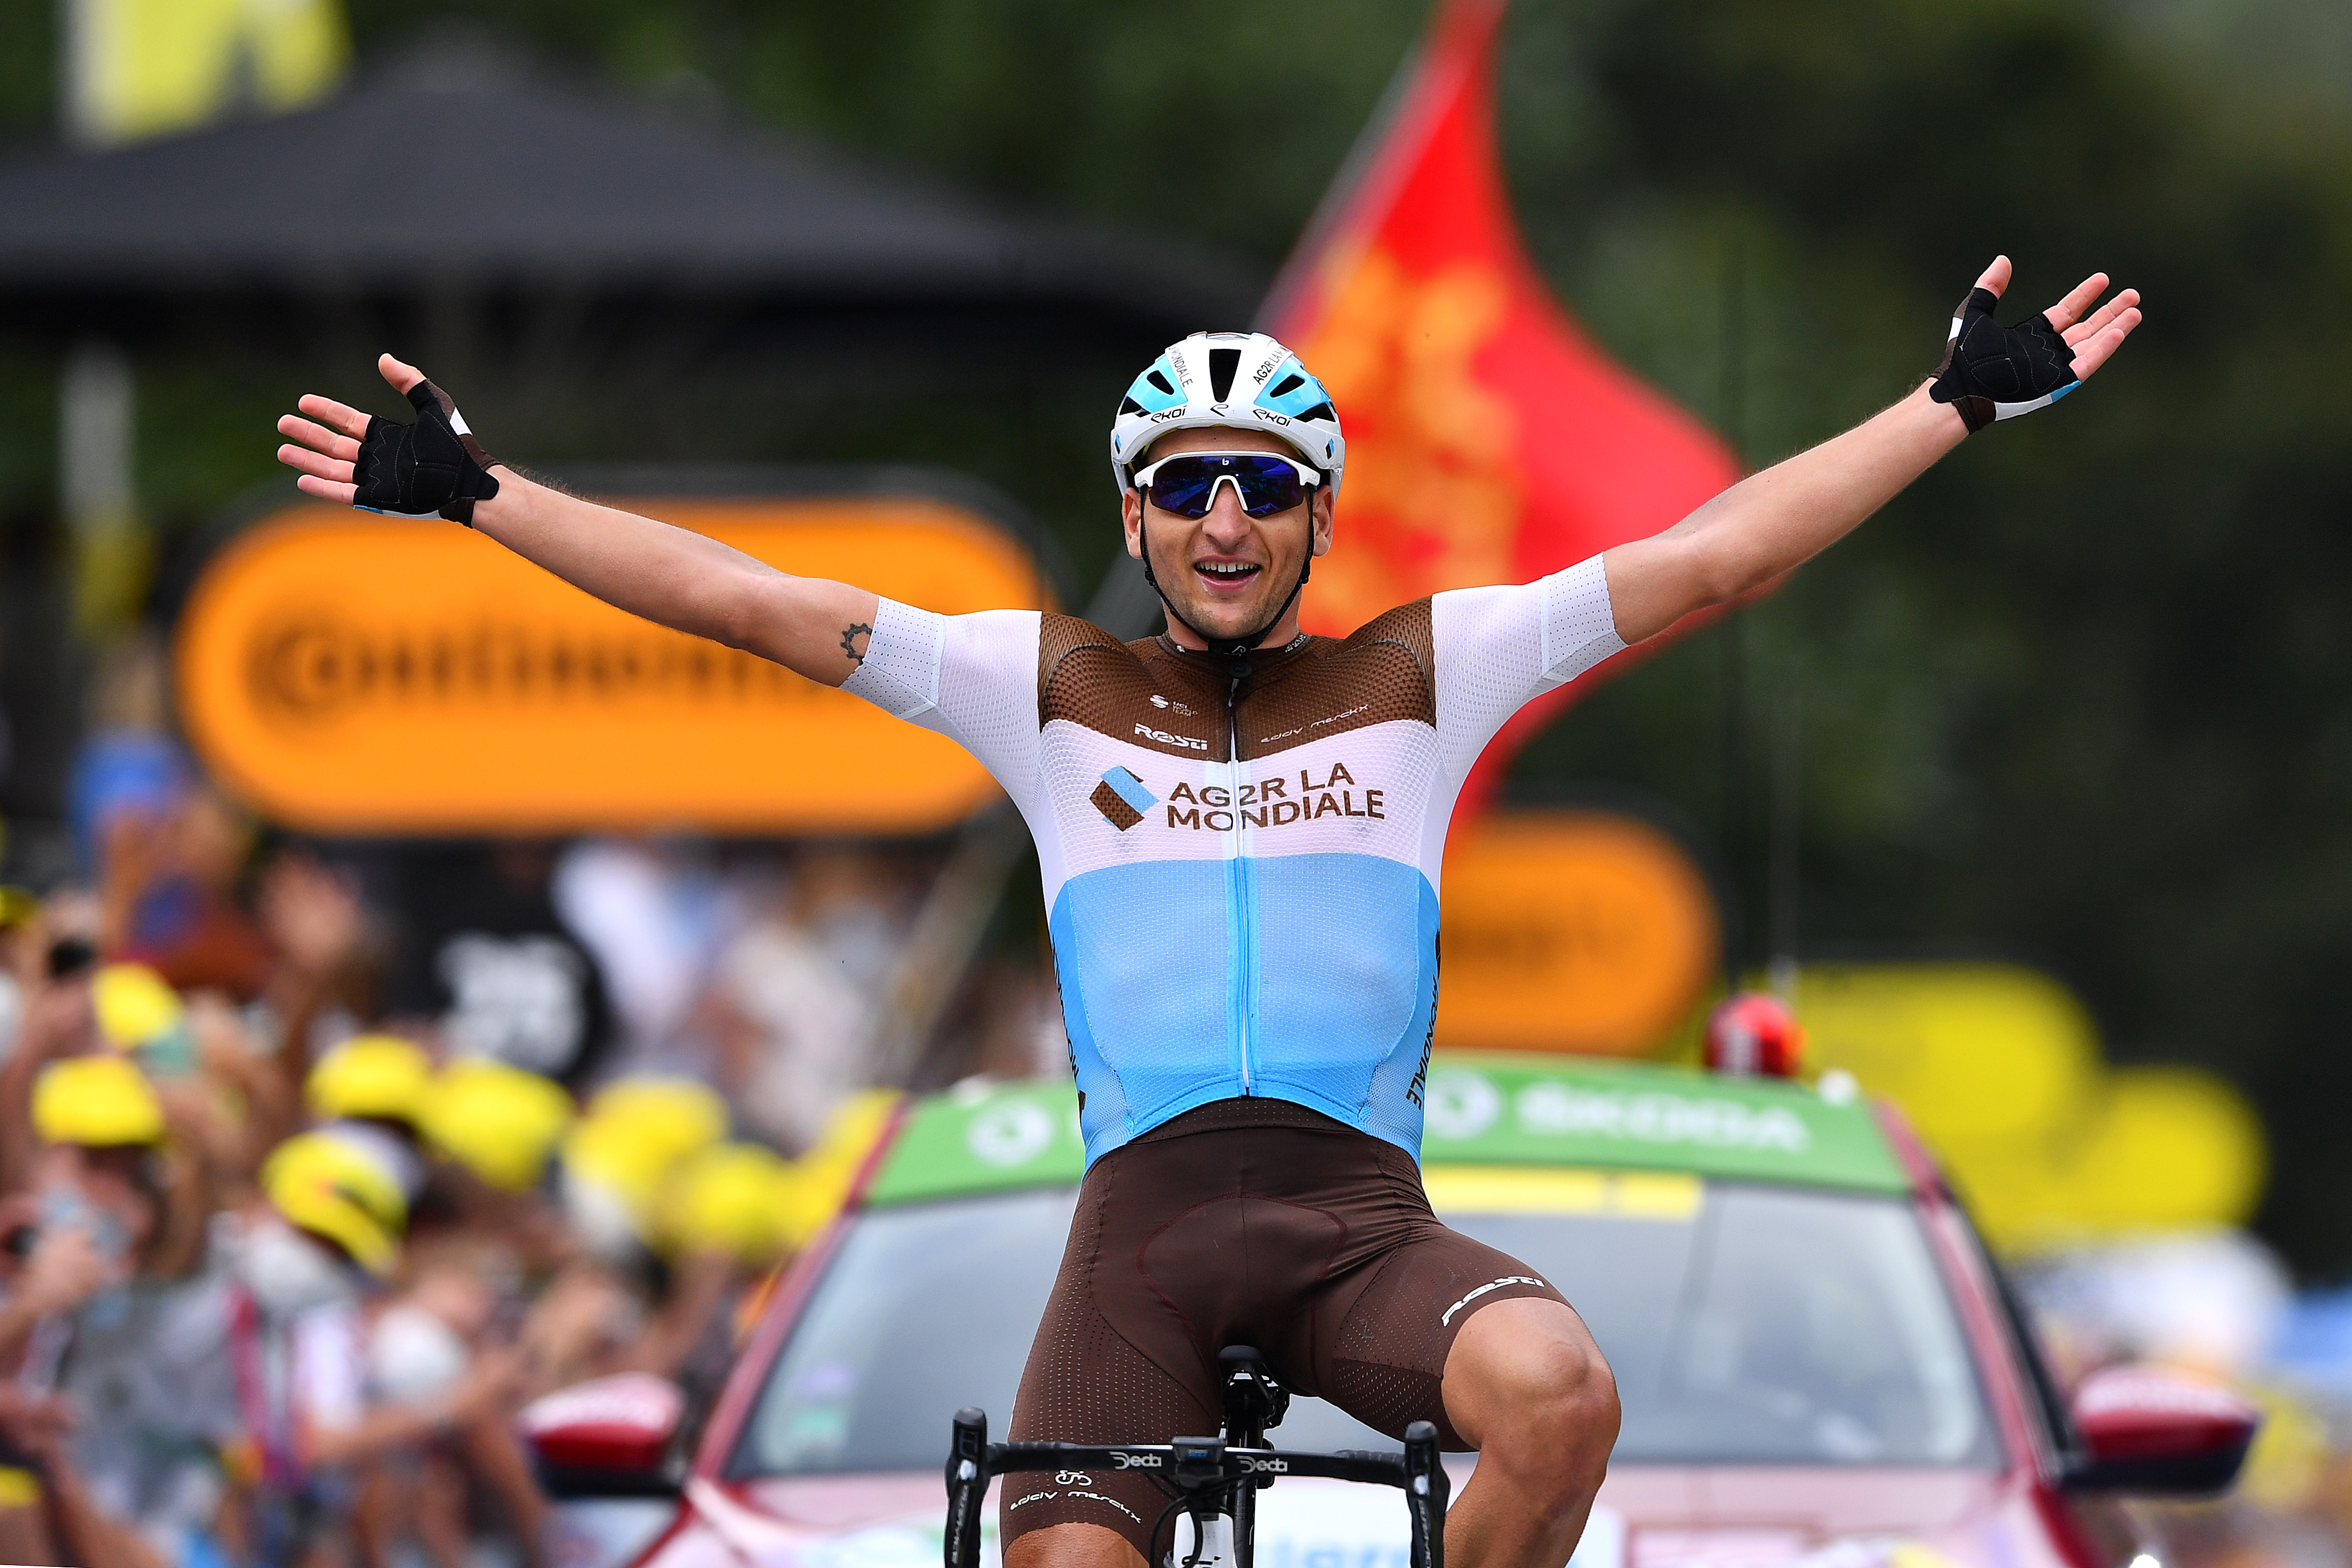 TDF 2020 / STAGE 8: VICTORY OF NANS PETERS